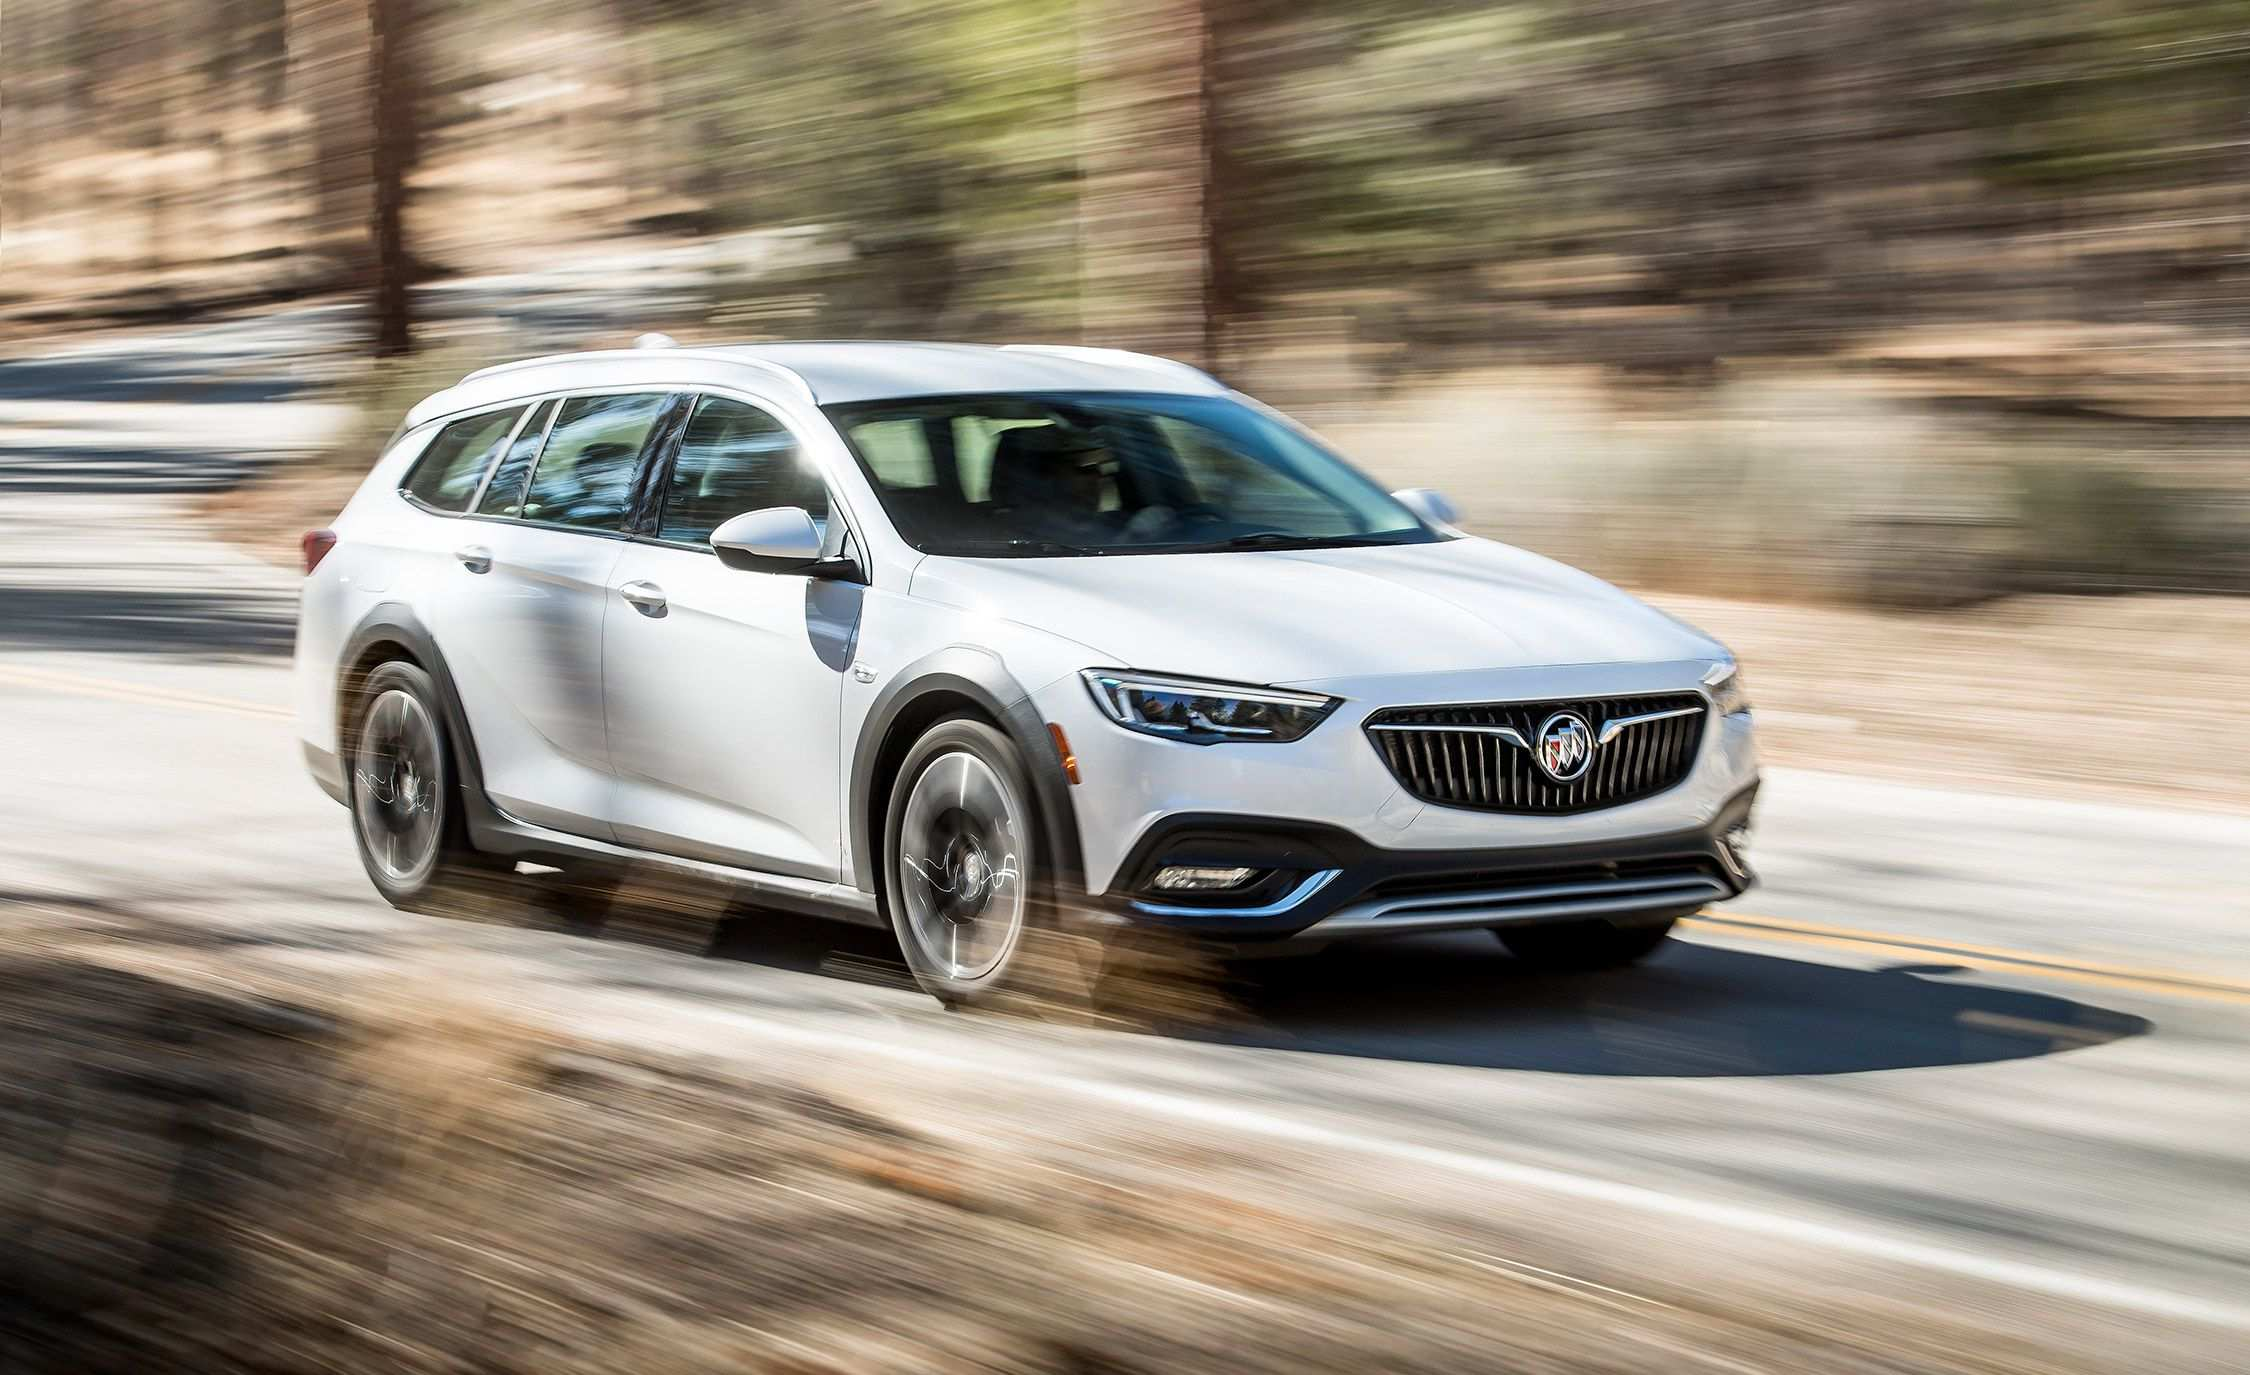 73 Great The Buick Station Wagon 2019 Performance Release for The Buick Station Wagon 2019 Performance